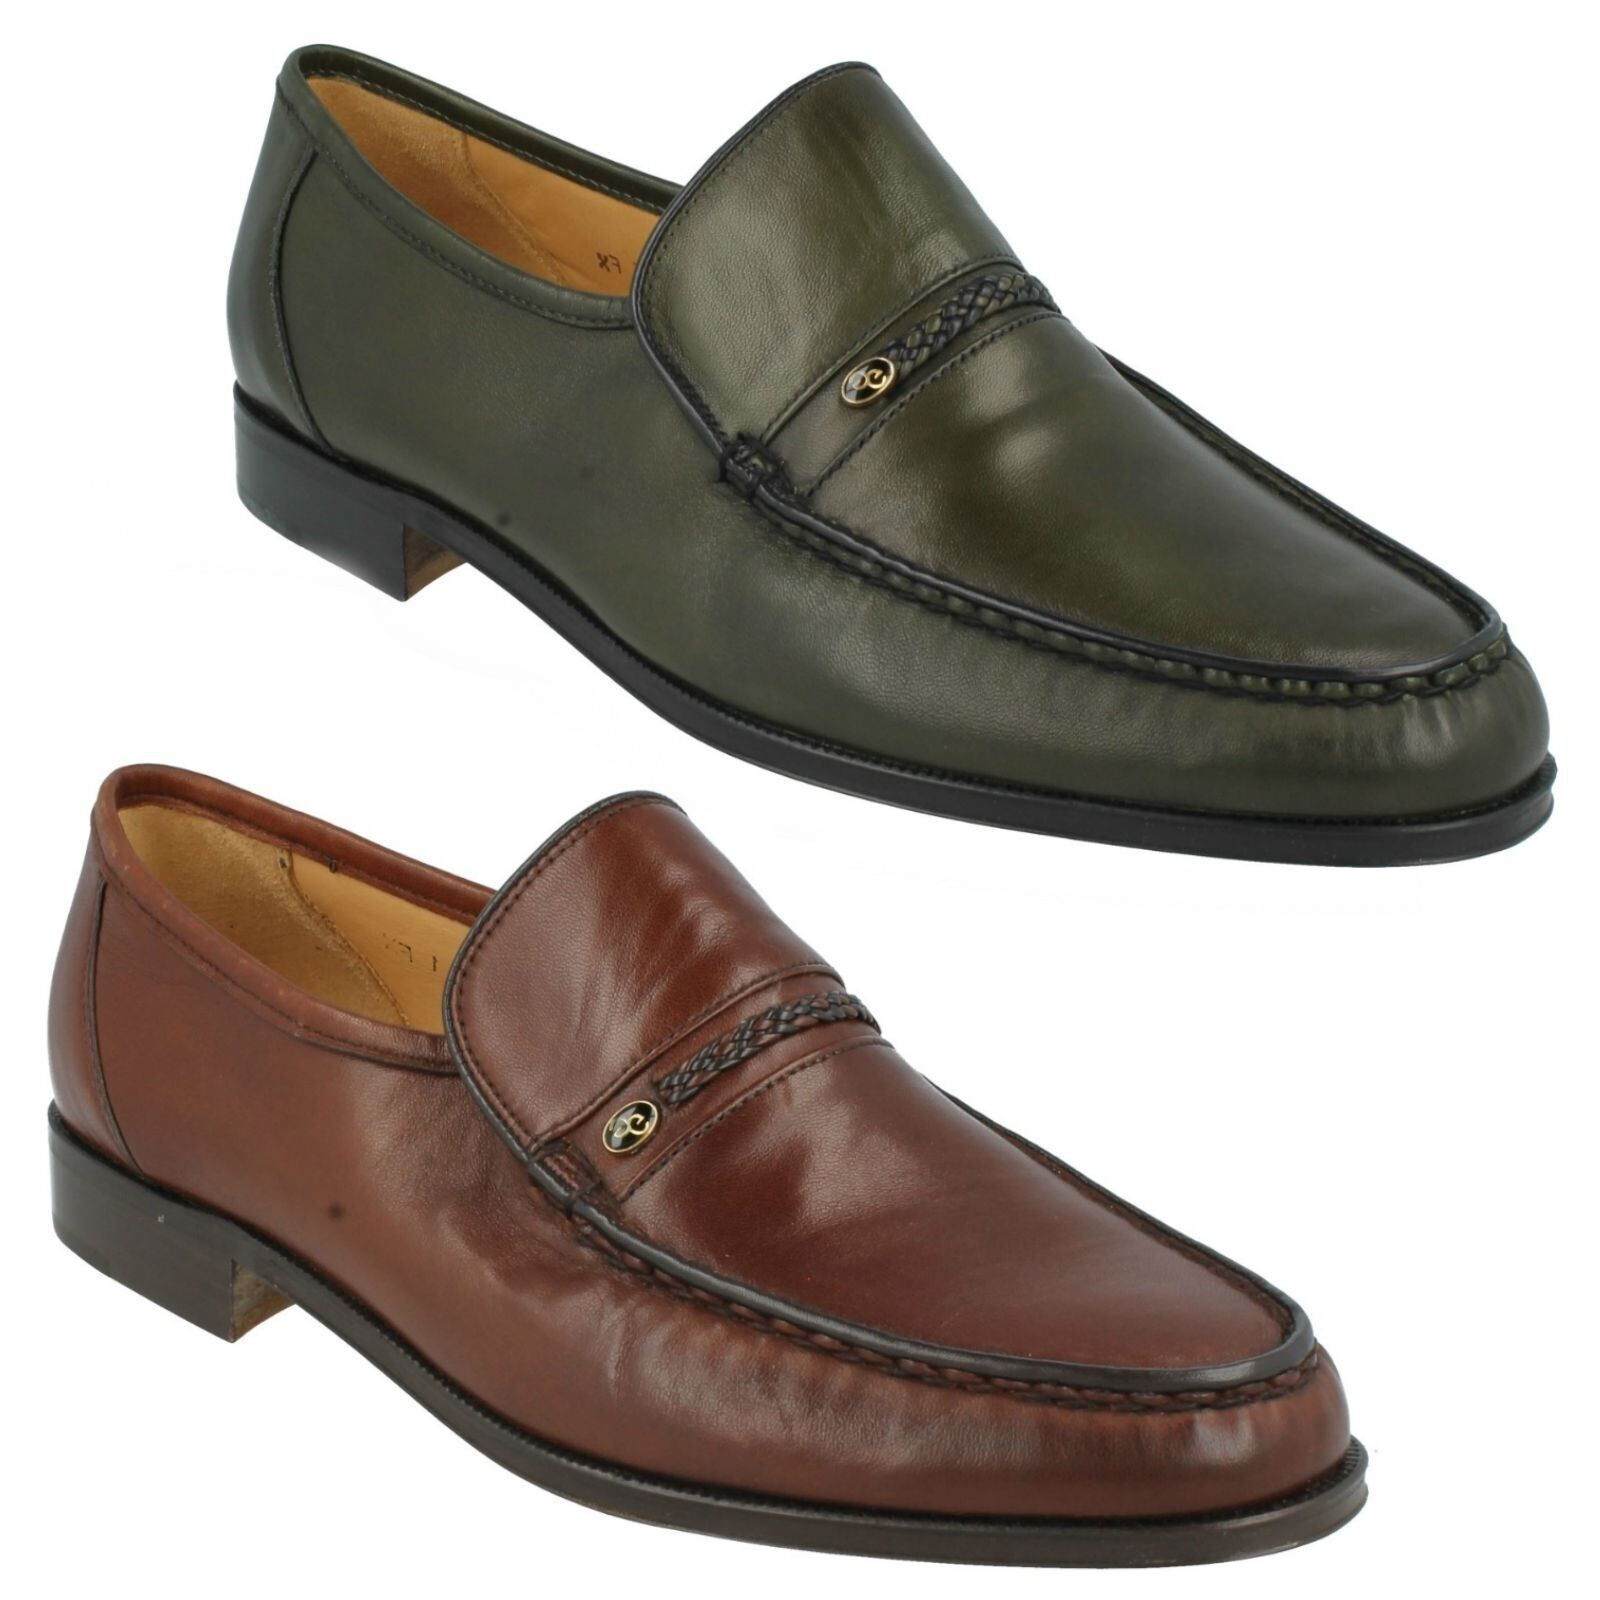 AMOS MENS GRENSON BROWN GREEN PLAIN LEATHER SLIP ON MOCCASIN SMART FORMAL SHOES